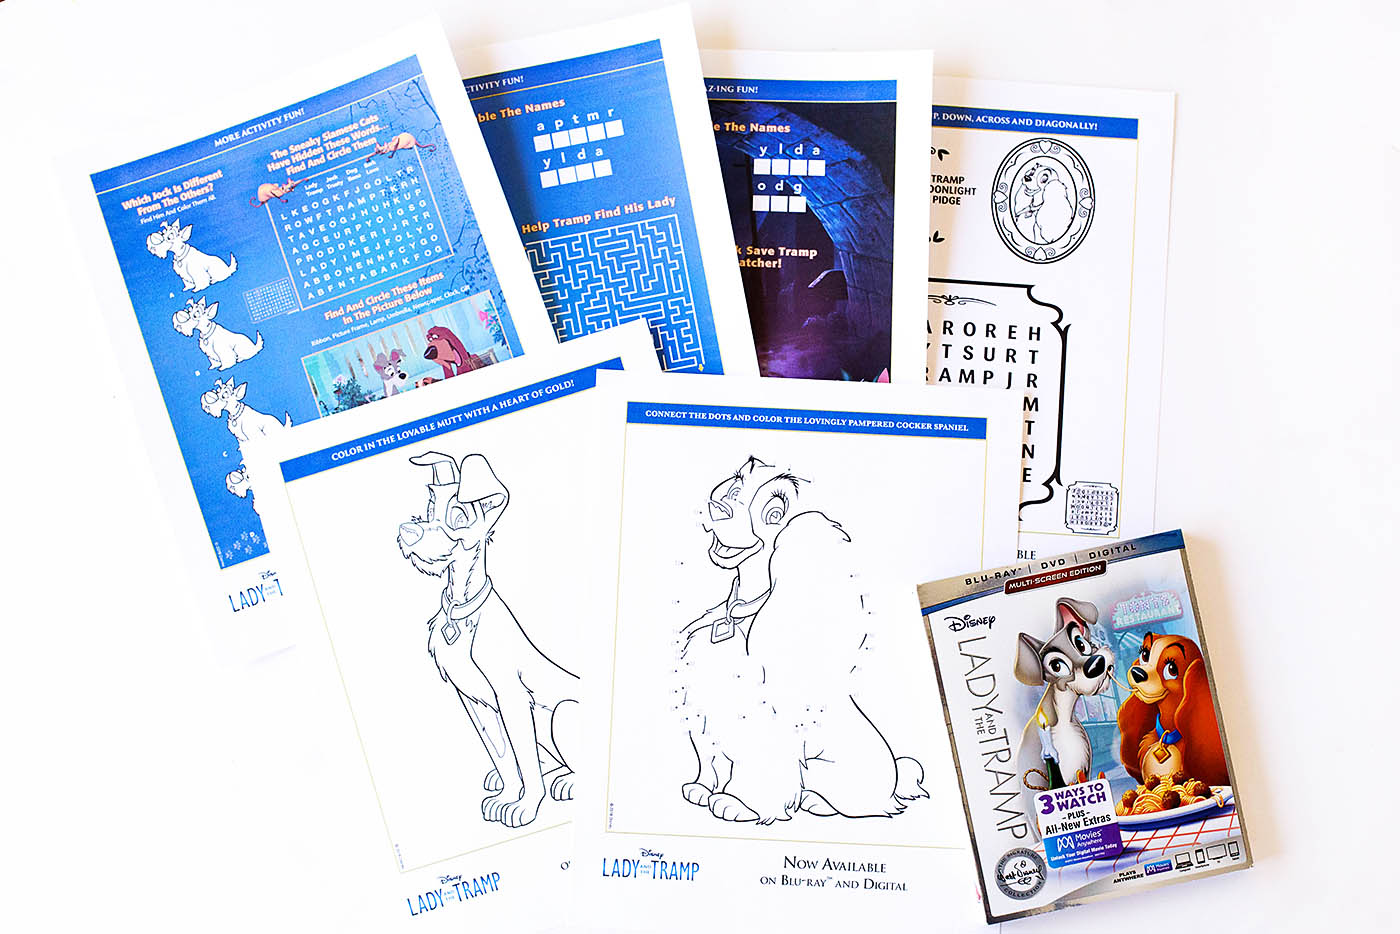 Lady and the Tramp printable paper activities